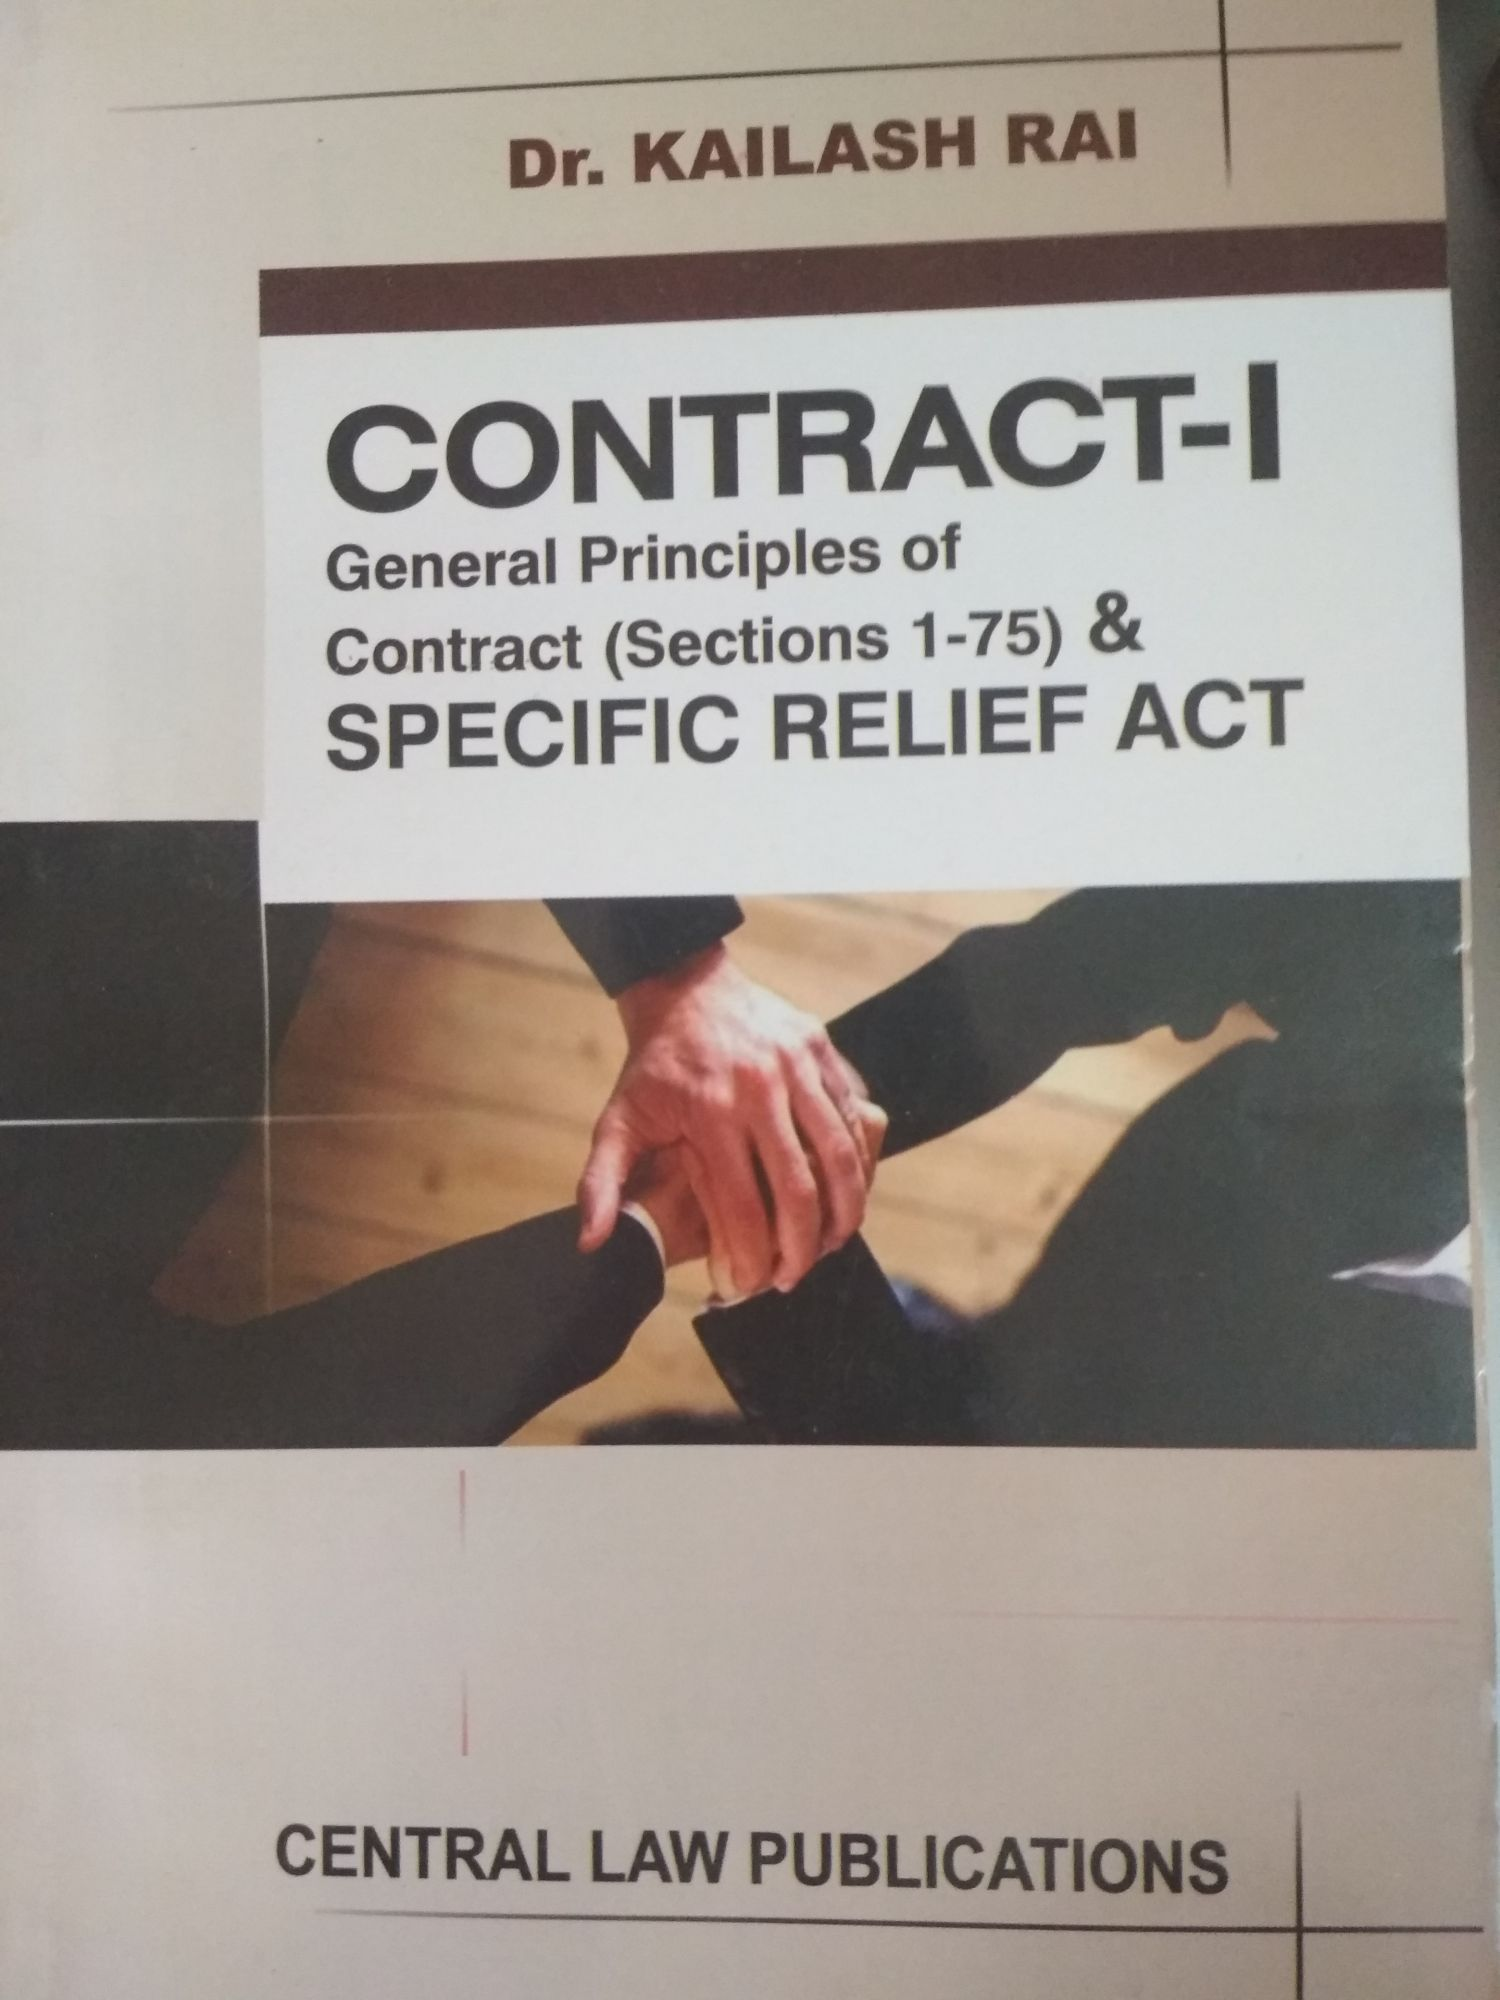 Kailash Rai CLA Law Of Contract 1 General Principles Of Specific Relief Act